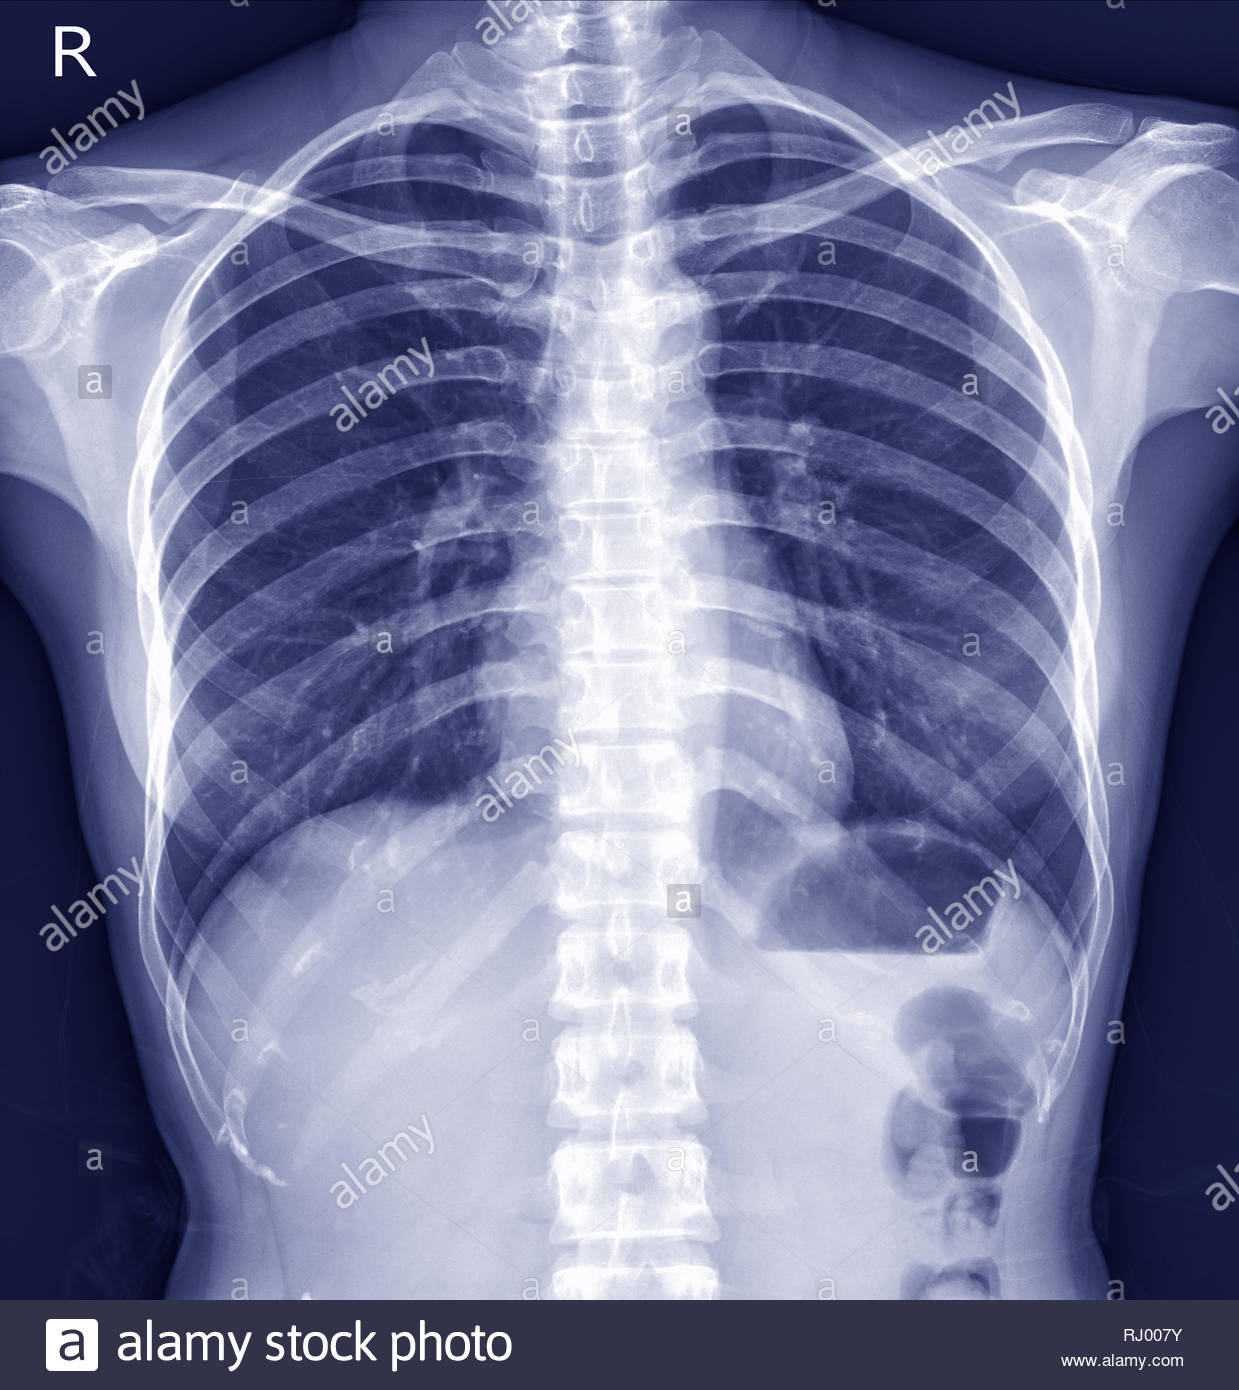 Chest x-ray There is no pulmonary infiltration.Normal heart size.Both costophrenic angles are clear. Intact osseous structure.Impression:- Normal ches - Stock Image